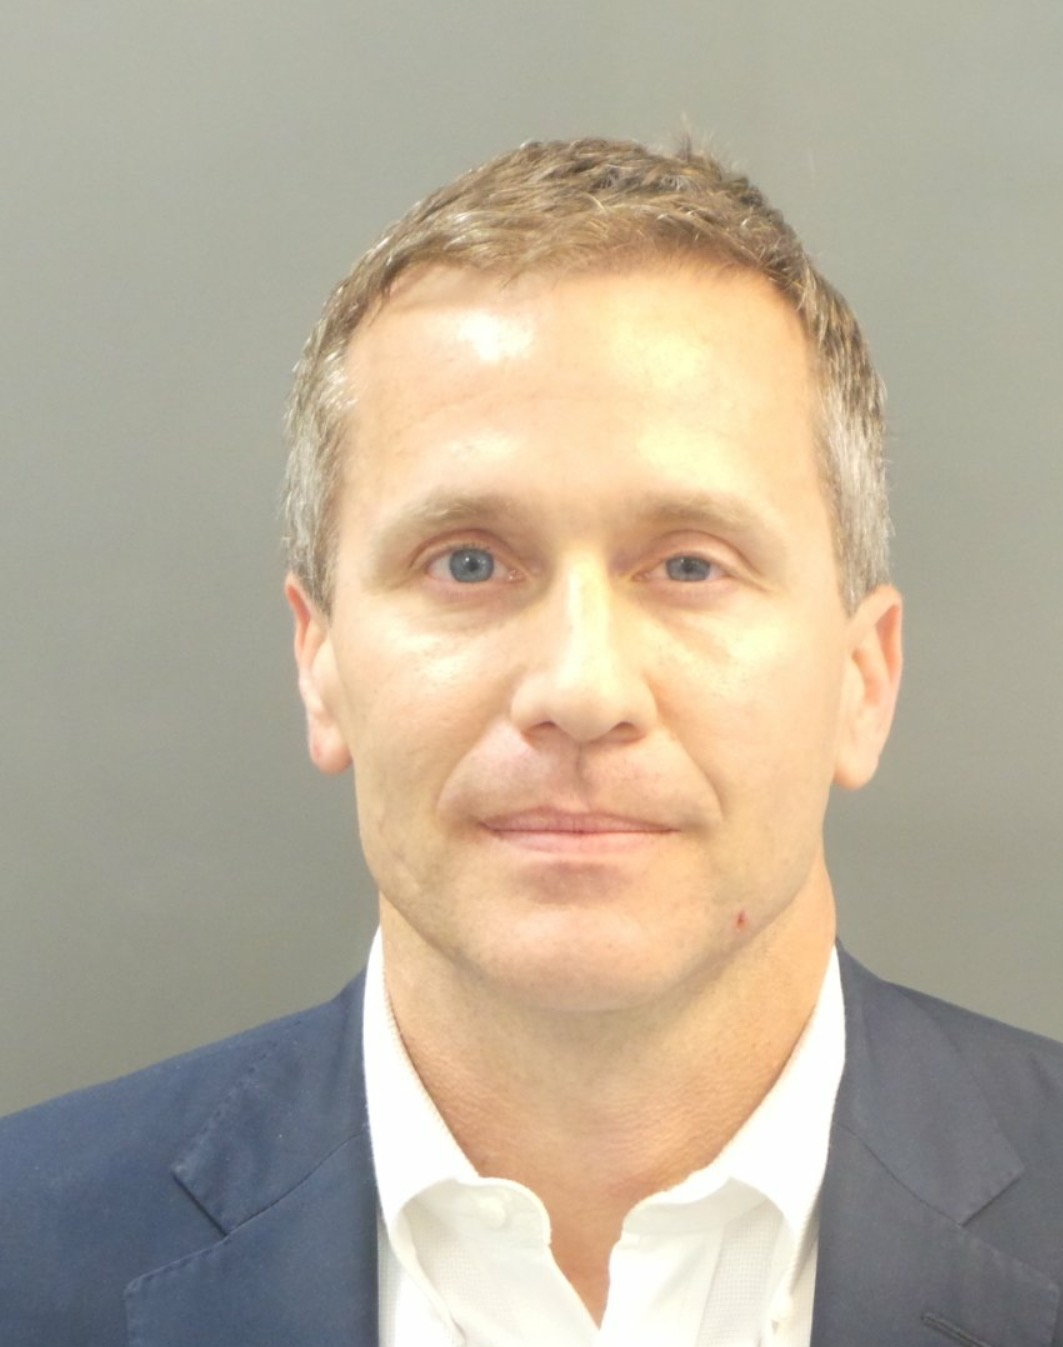 Missouri governor Eric Greitens 'sexually abused and blackmailed hairdresser'